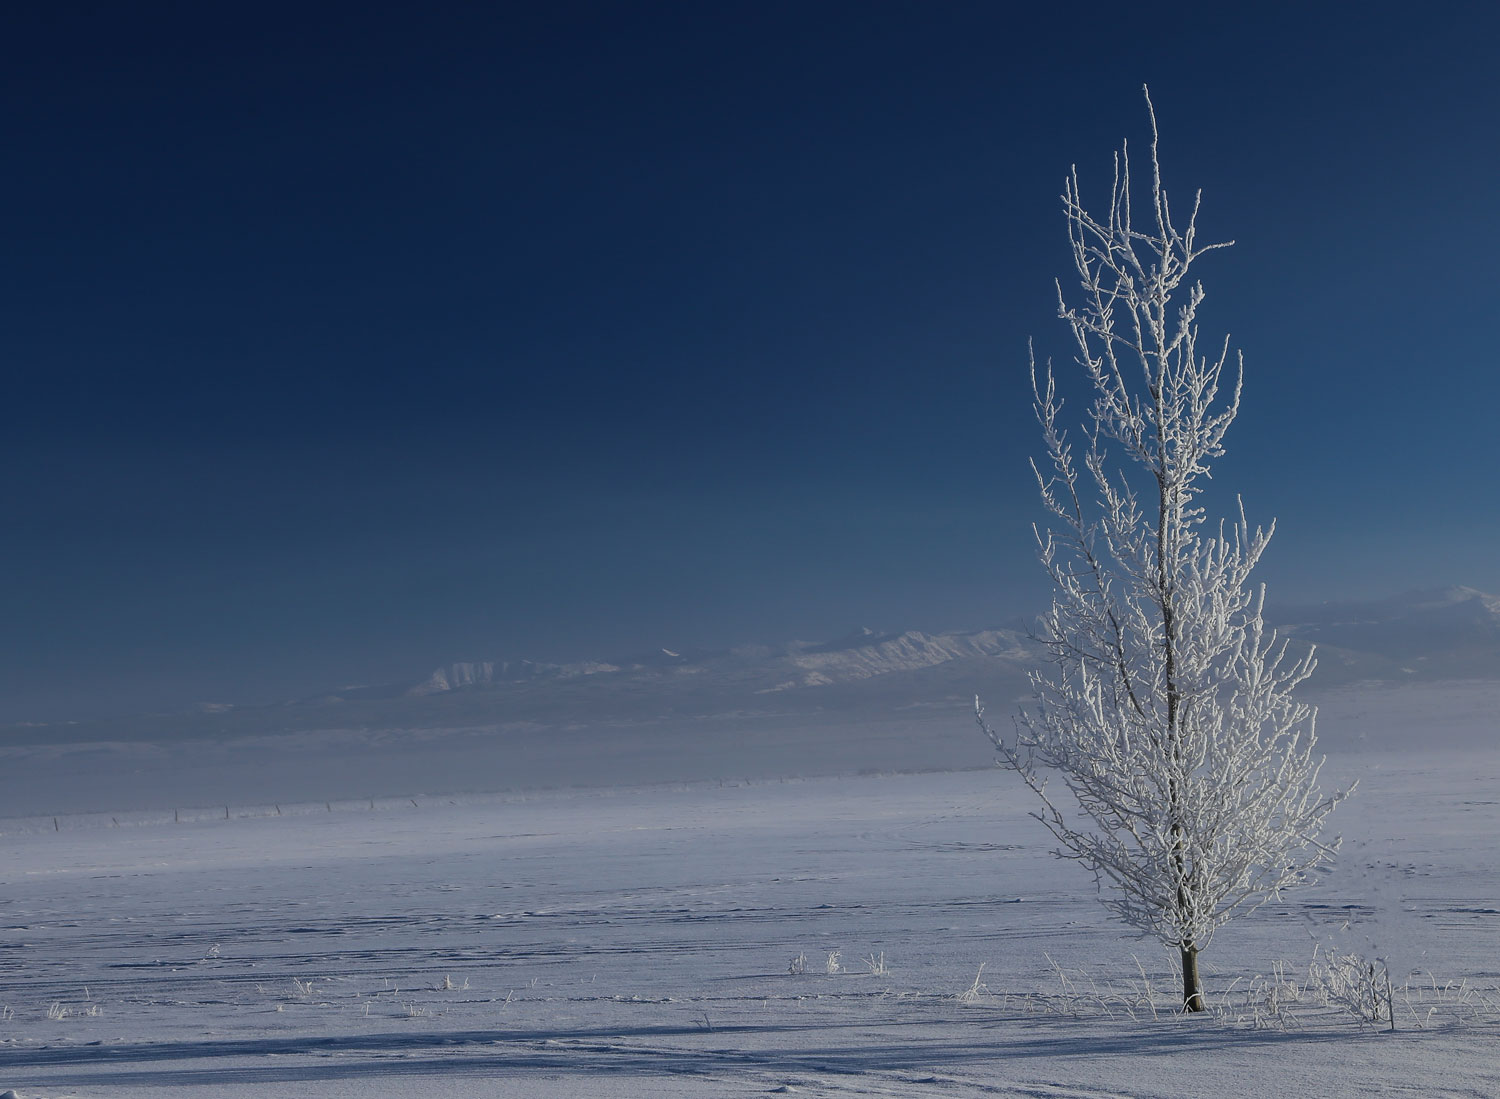 tree-idaho-alone.jpg